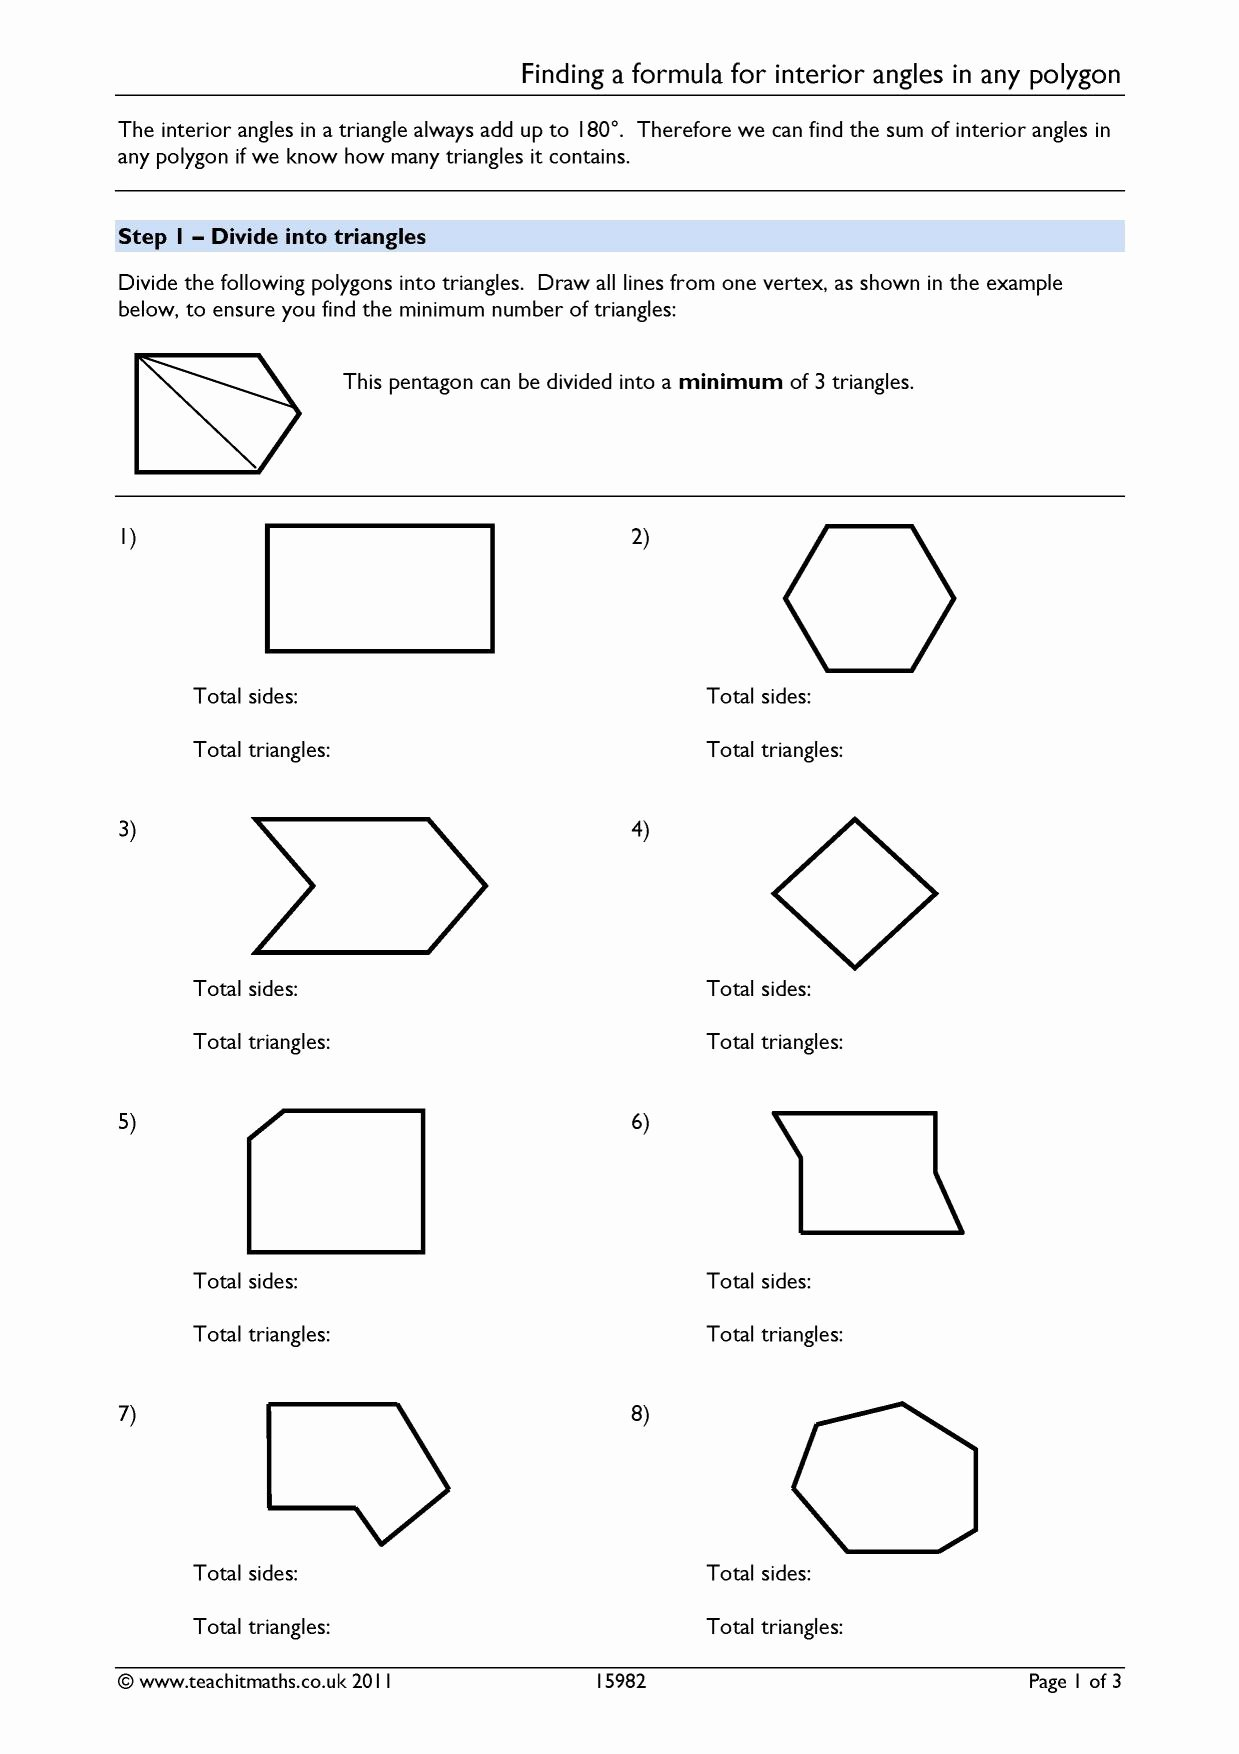 Intermediate Value theorem Worksheet Fresh Finding A formula for Interior Angles In Any Polygon